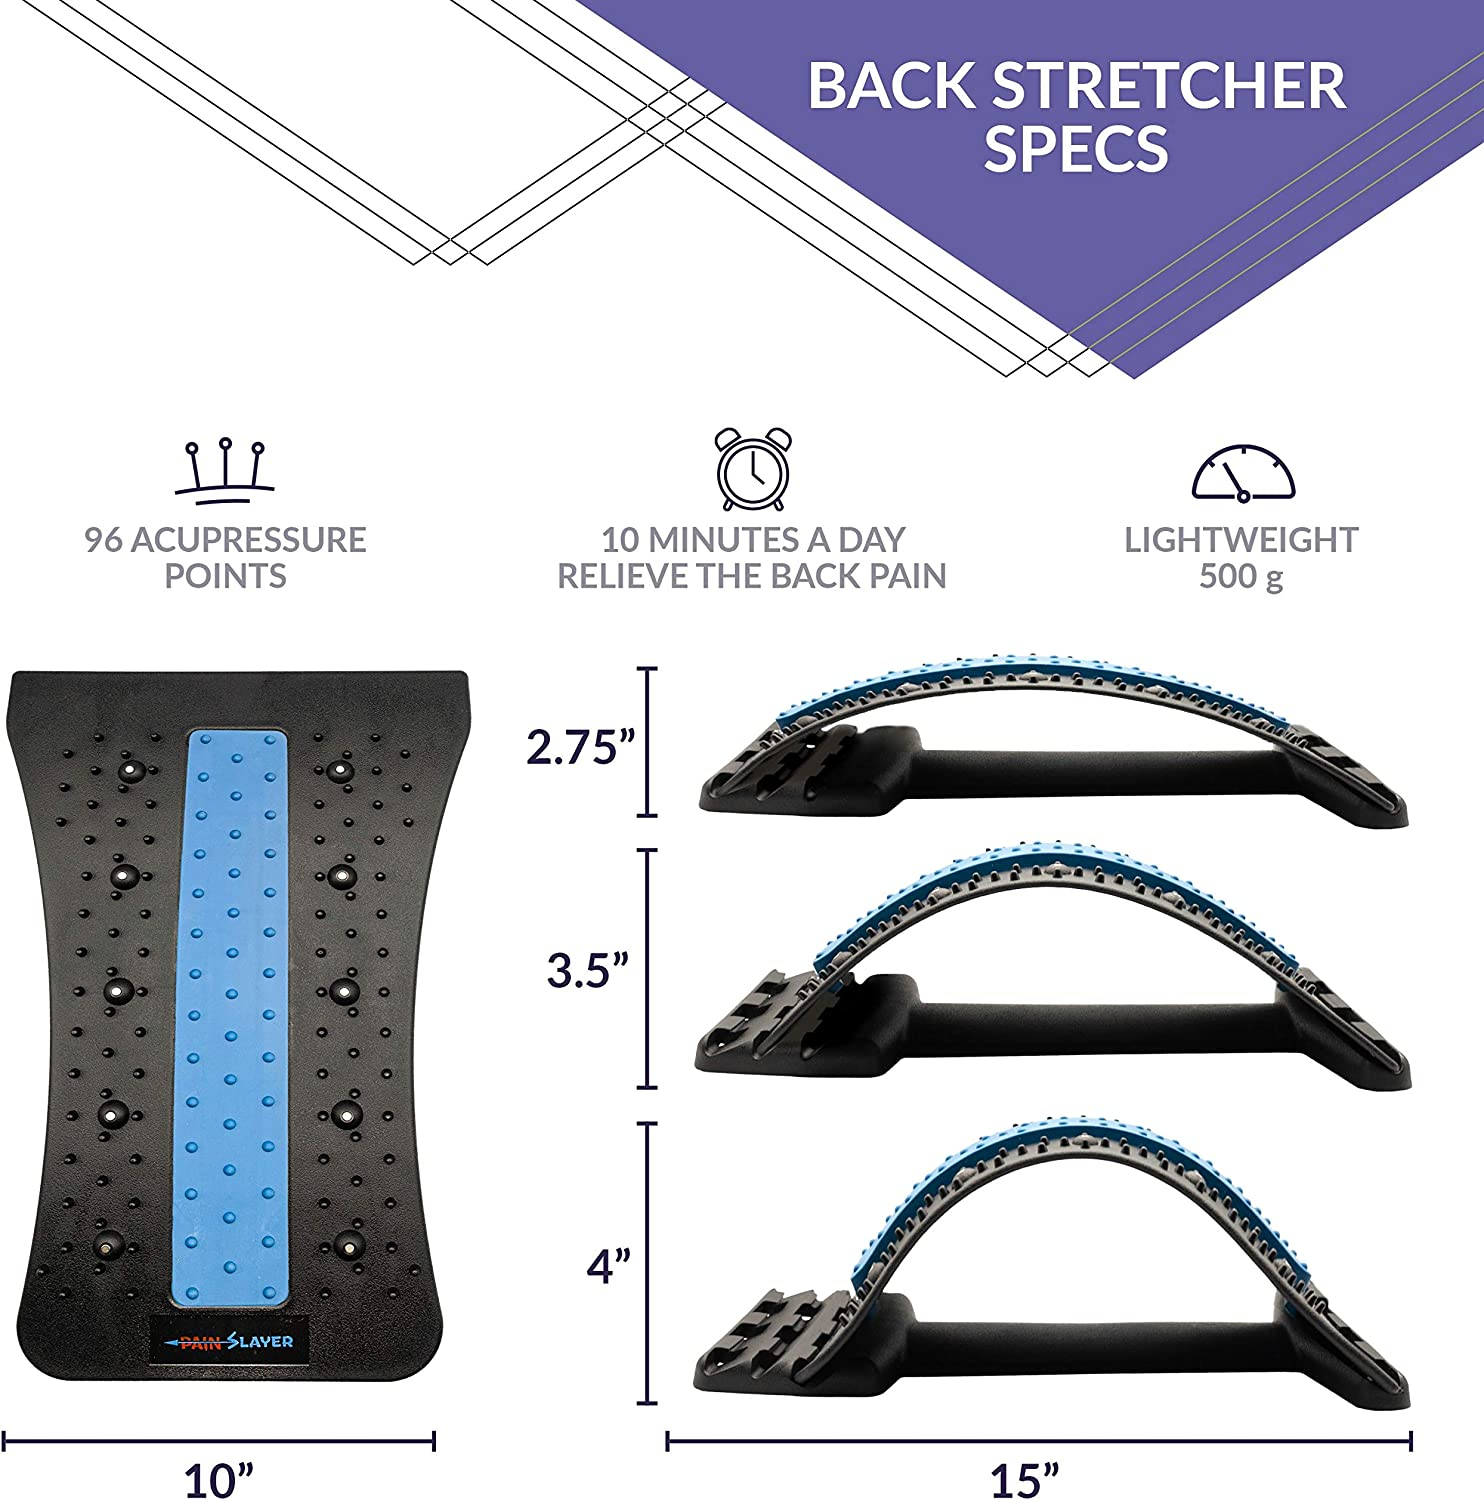 PAINSLAYER Back Stretcher for Lower Back Pain Relief and Mobile Phone Massager Two Devices in One Pack